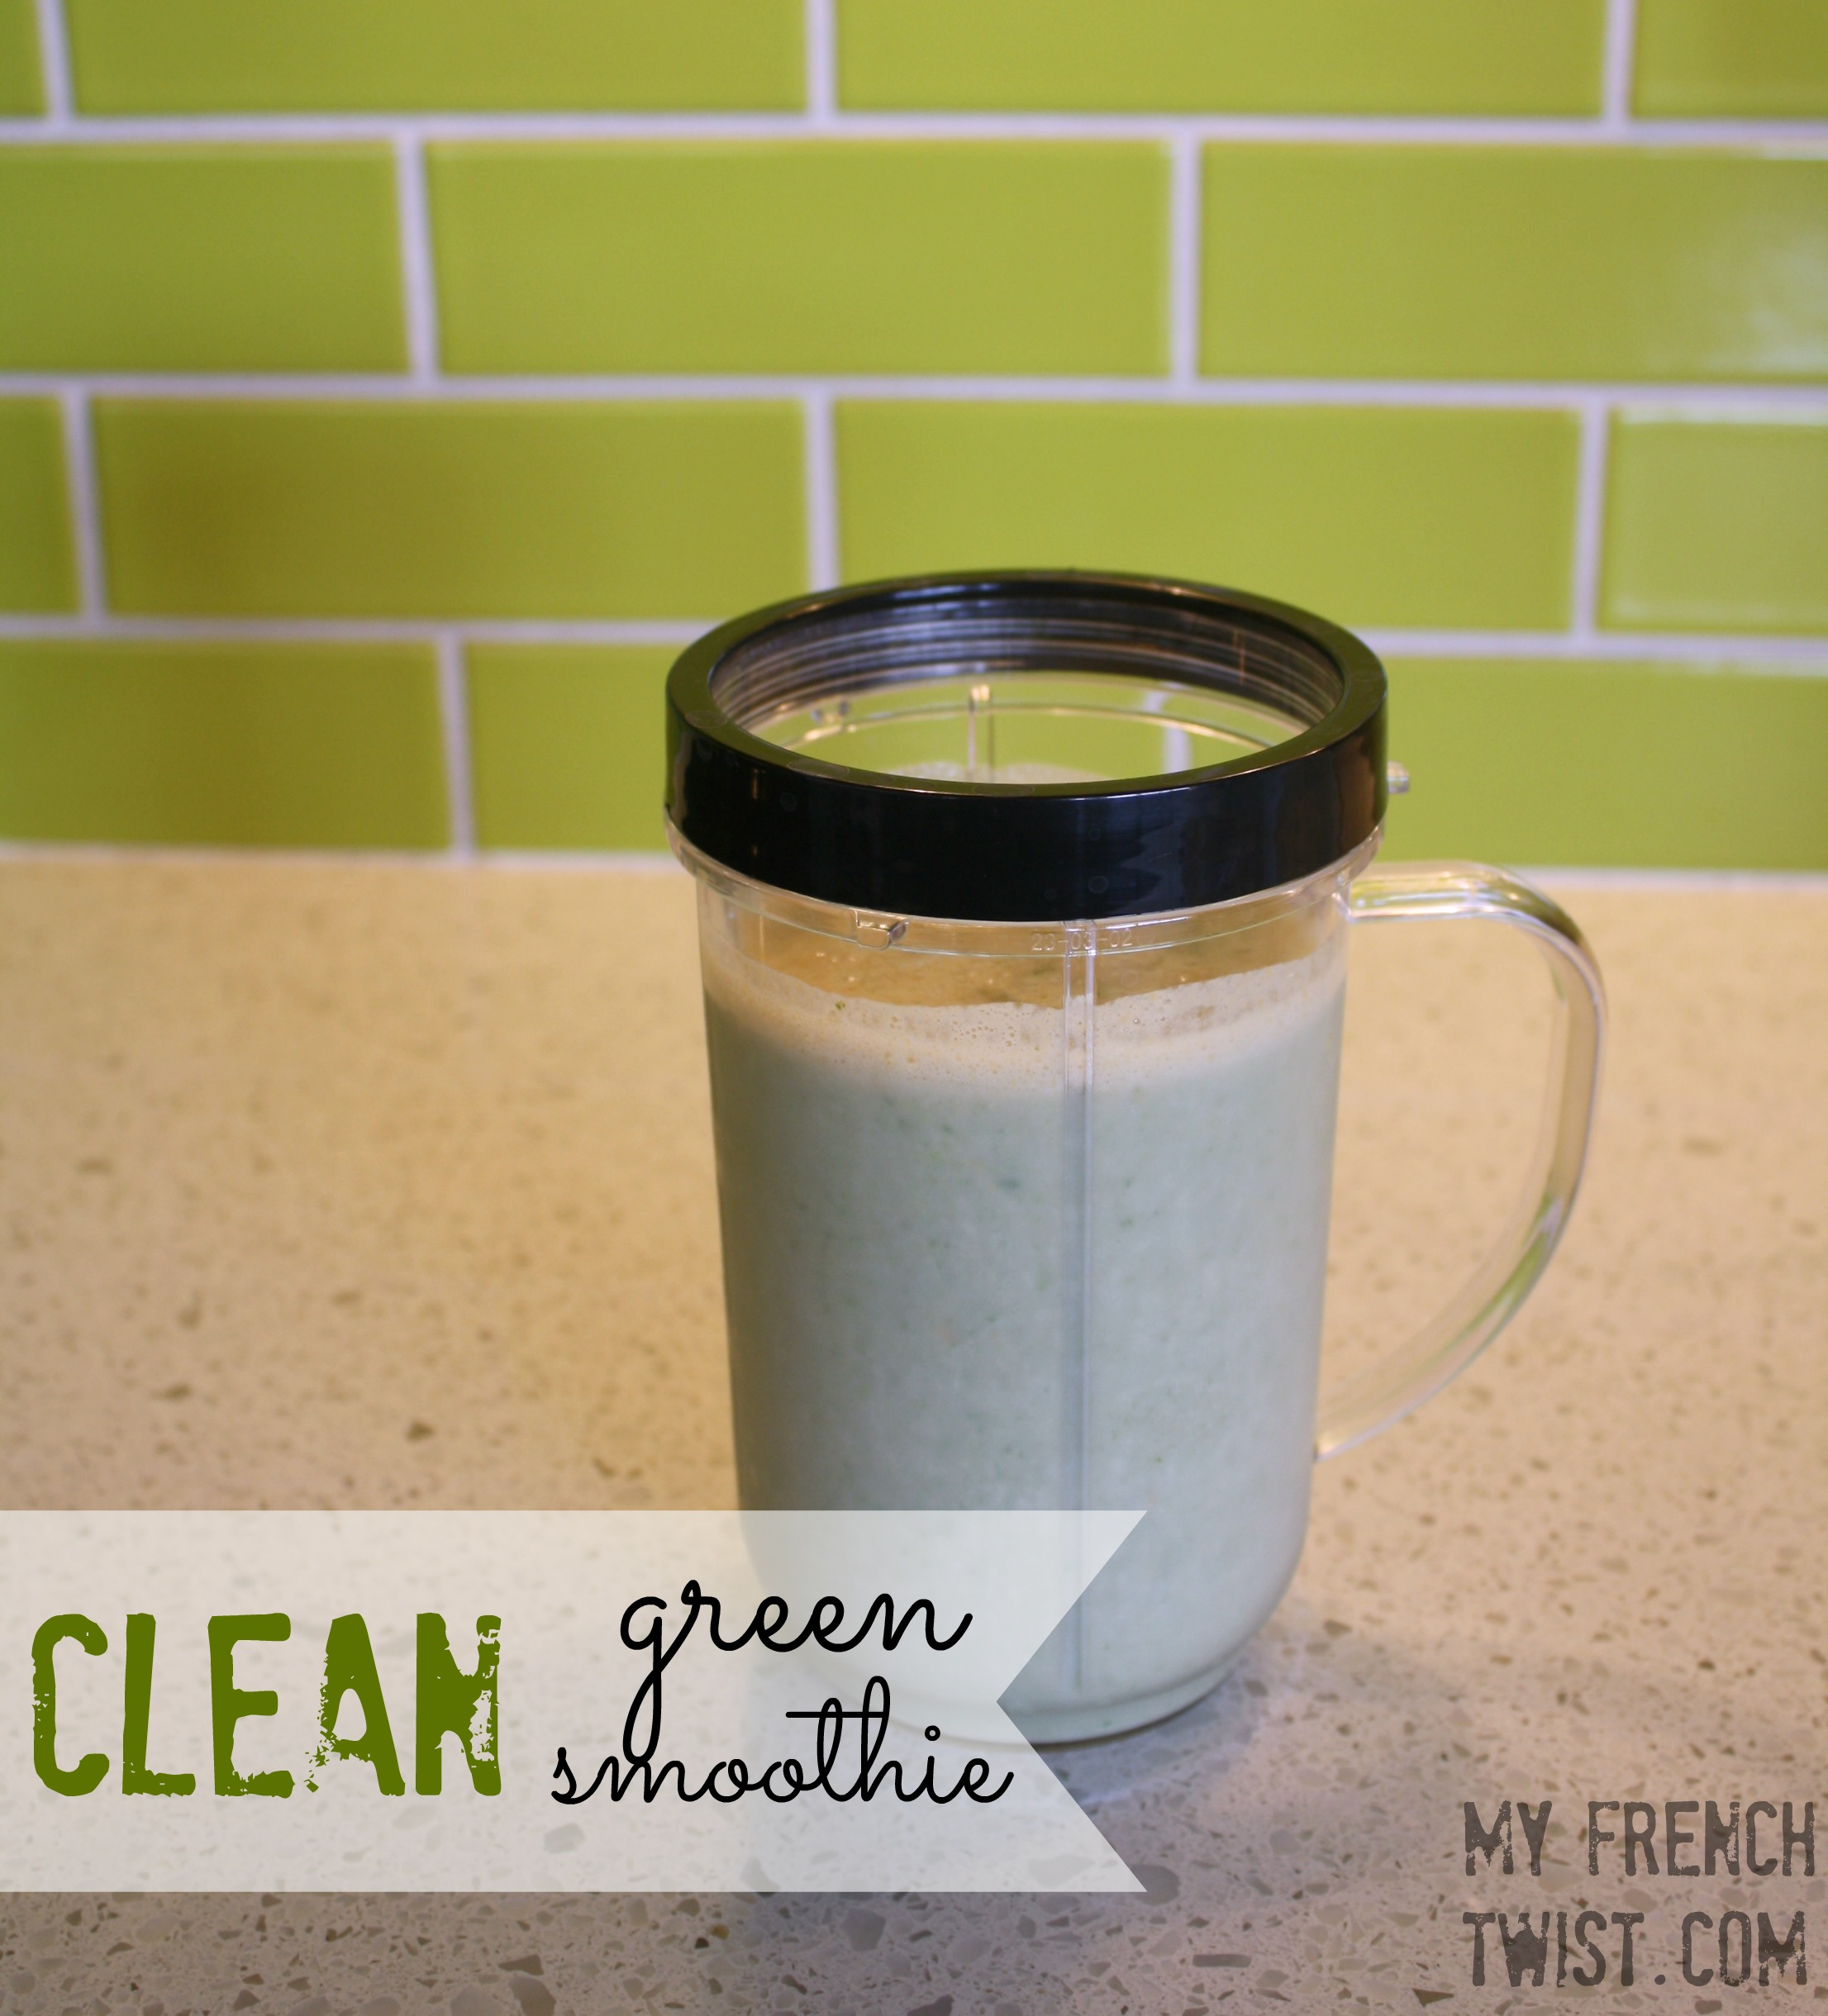 clean green smoothie - myfrenchtwist.com